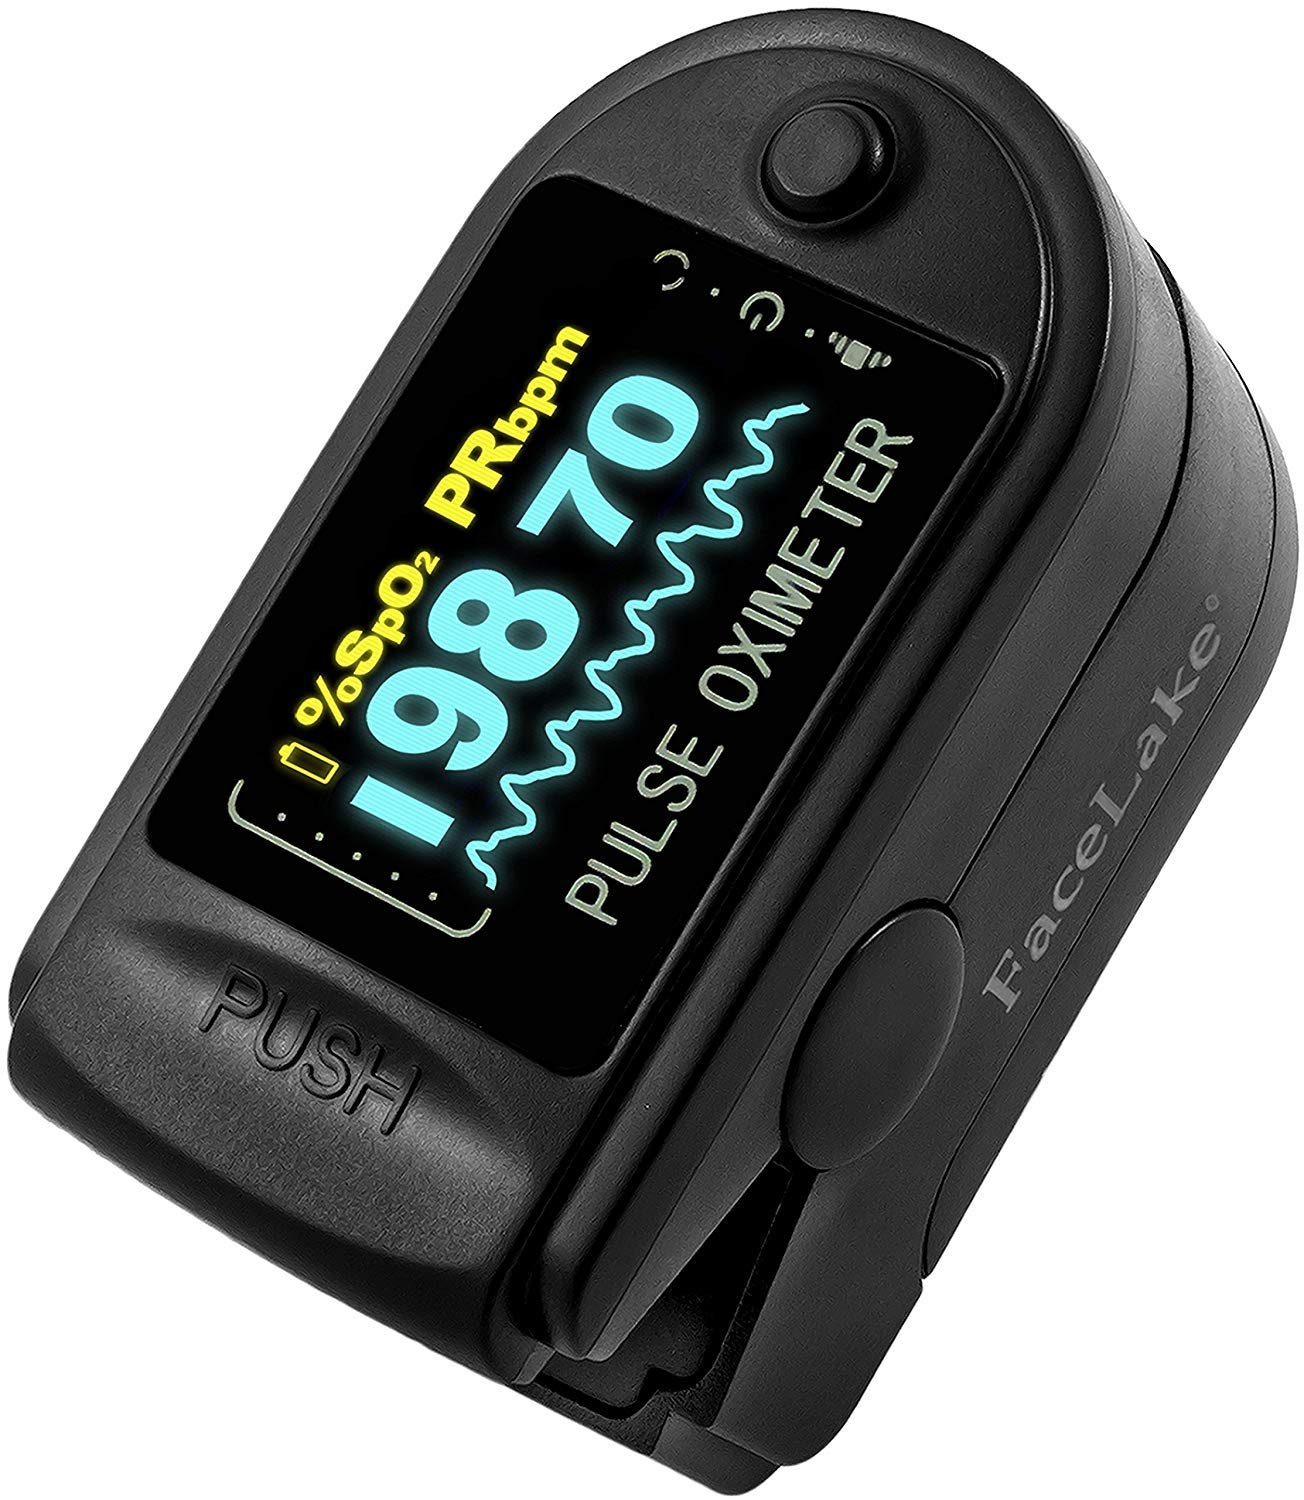 Facelake FL-350 Pulse Oximeter with Carrying Case Batteries Lanyard, Black